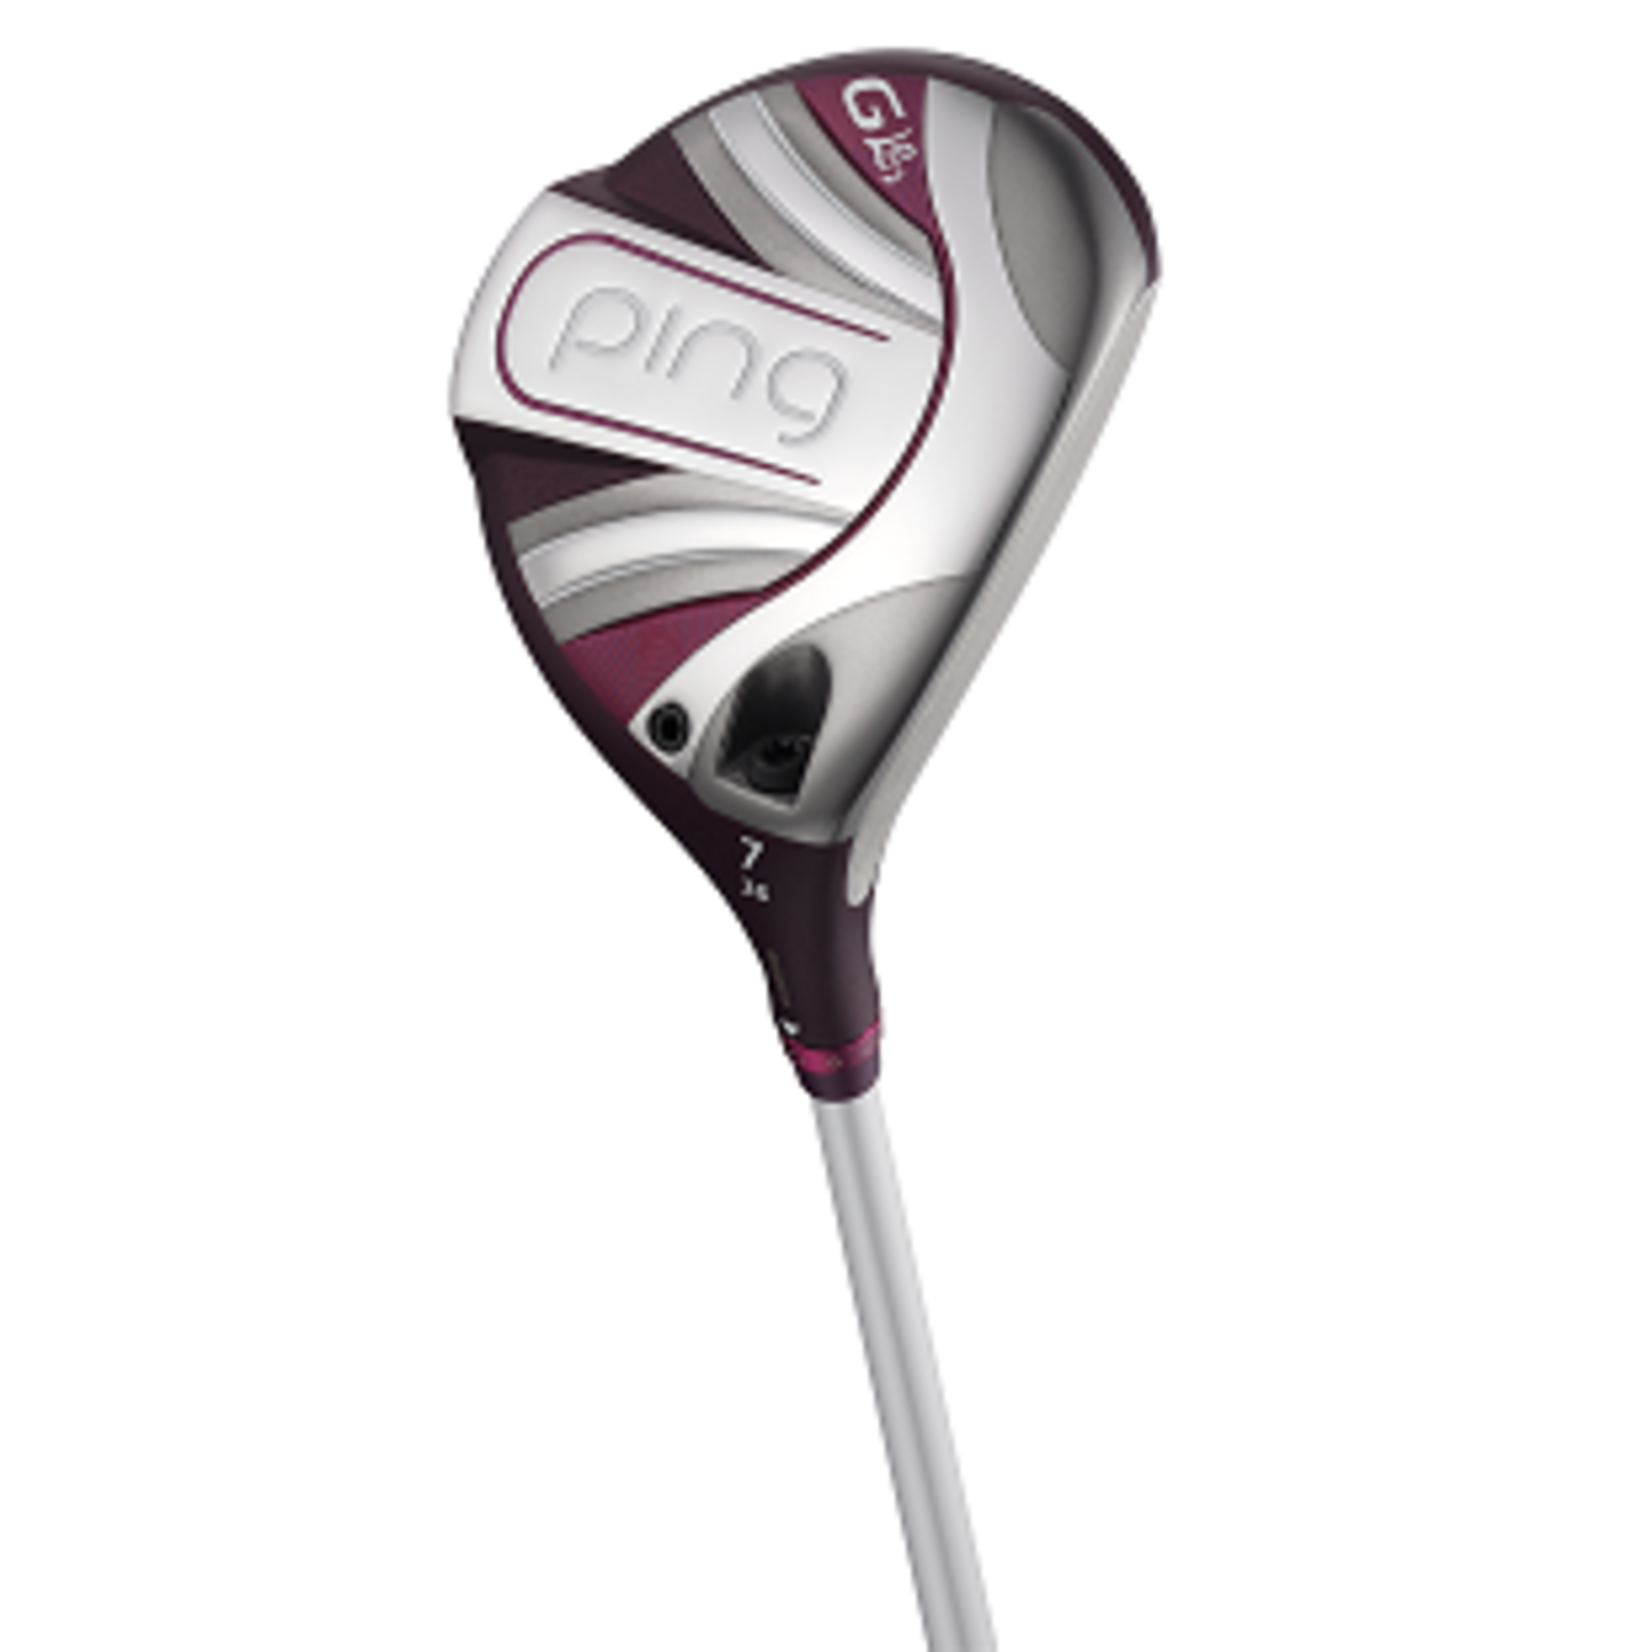 Ping Ping Gle2 fairwaywood 7 Ultra Lite